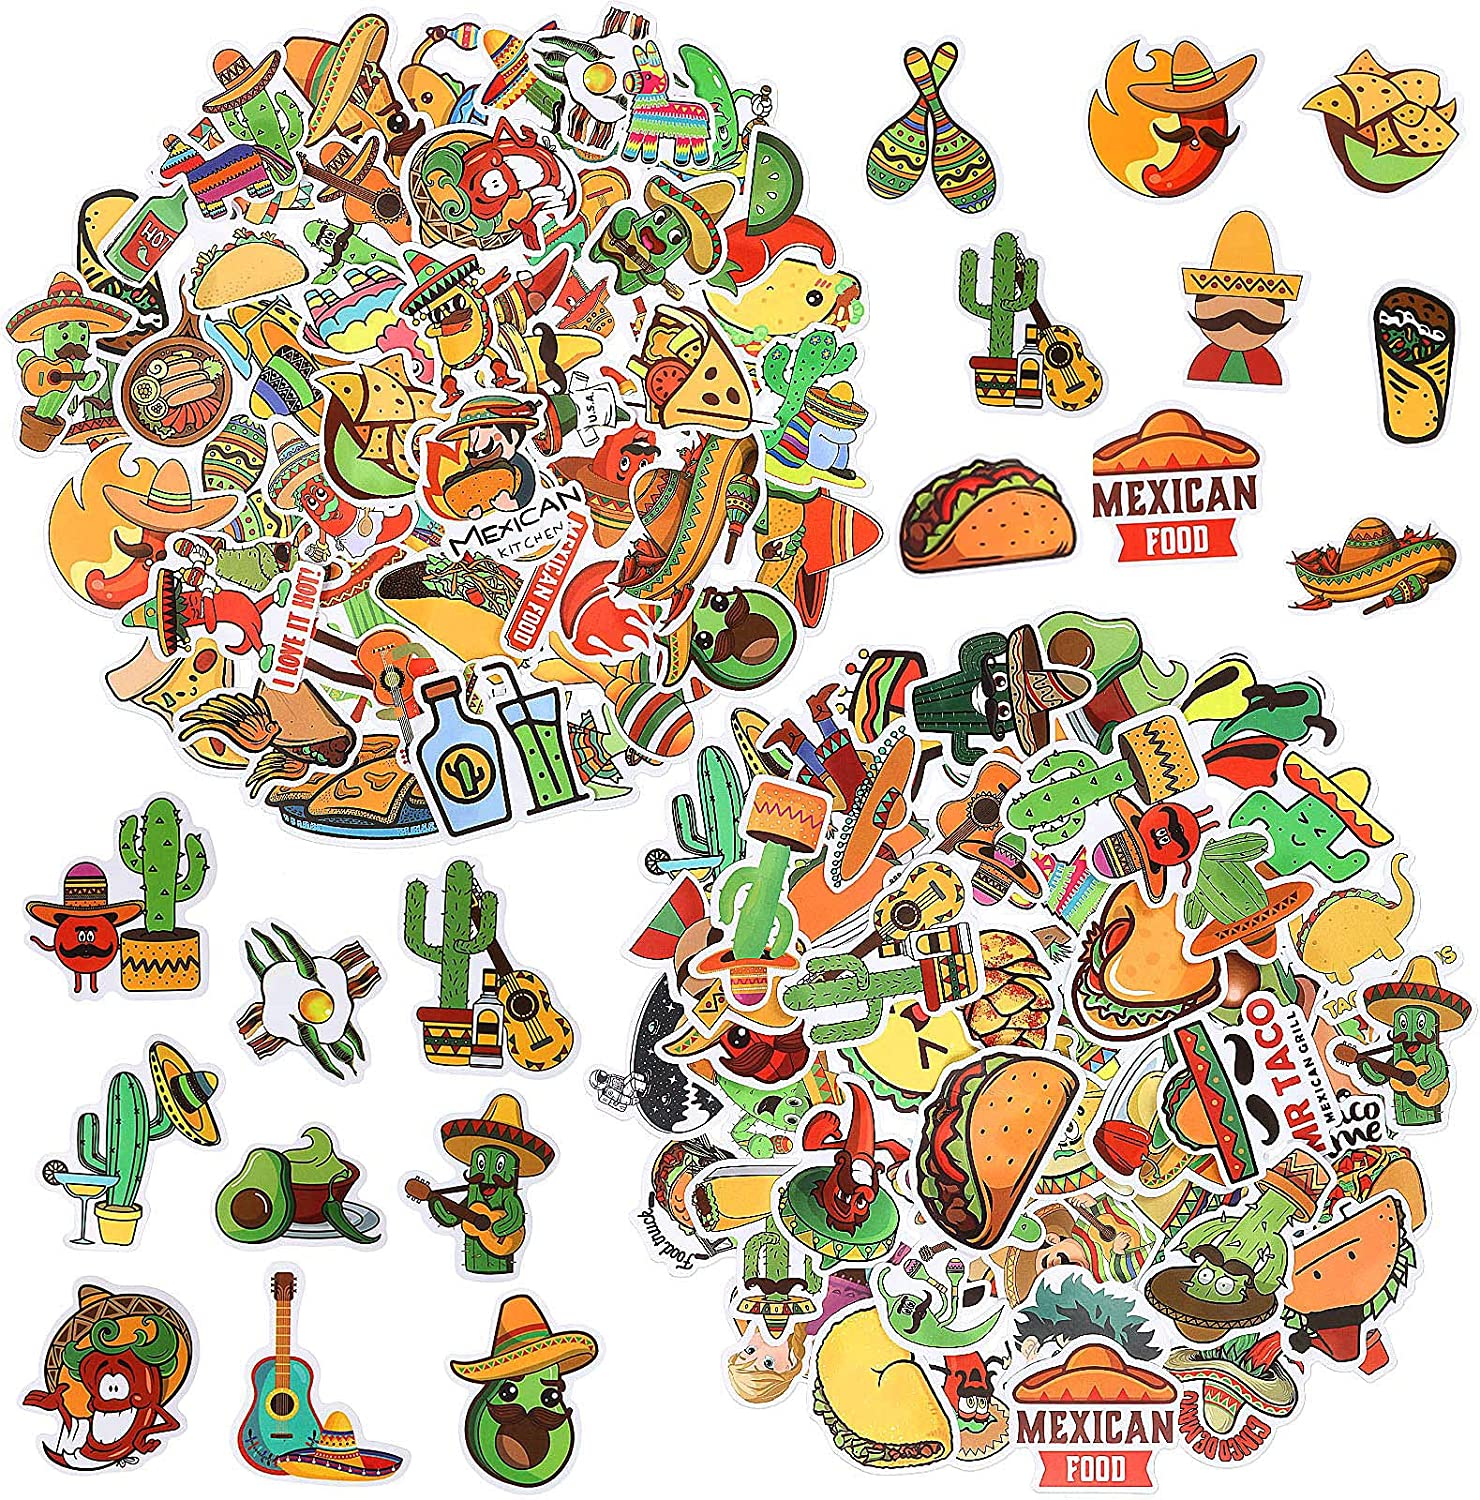 100 Pieces Mexican Food Stickers Waterproof Vinyl Stickers Decals Laptop Stickers Assorted Cute Mexican Stickers for Water Bottle, Fridge, Travel Case, Skateboard, Guitar, Decorations and Crafts